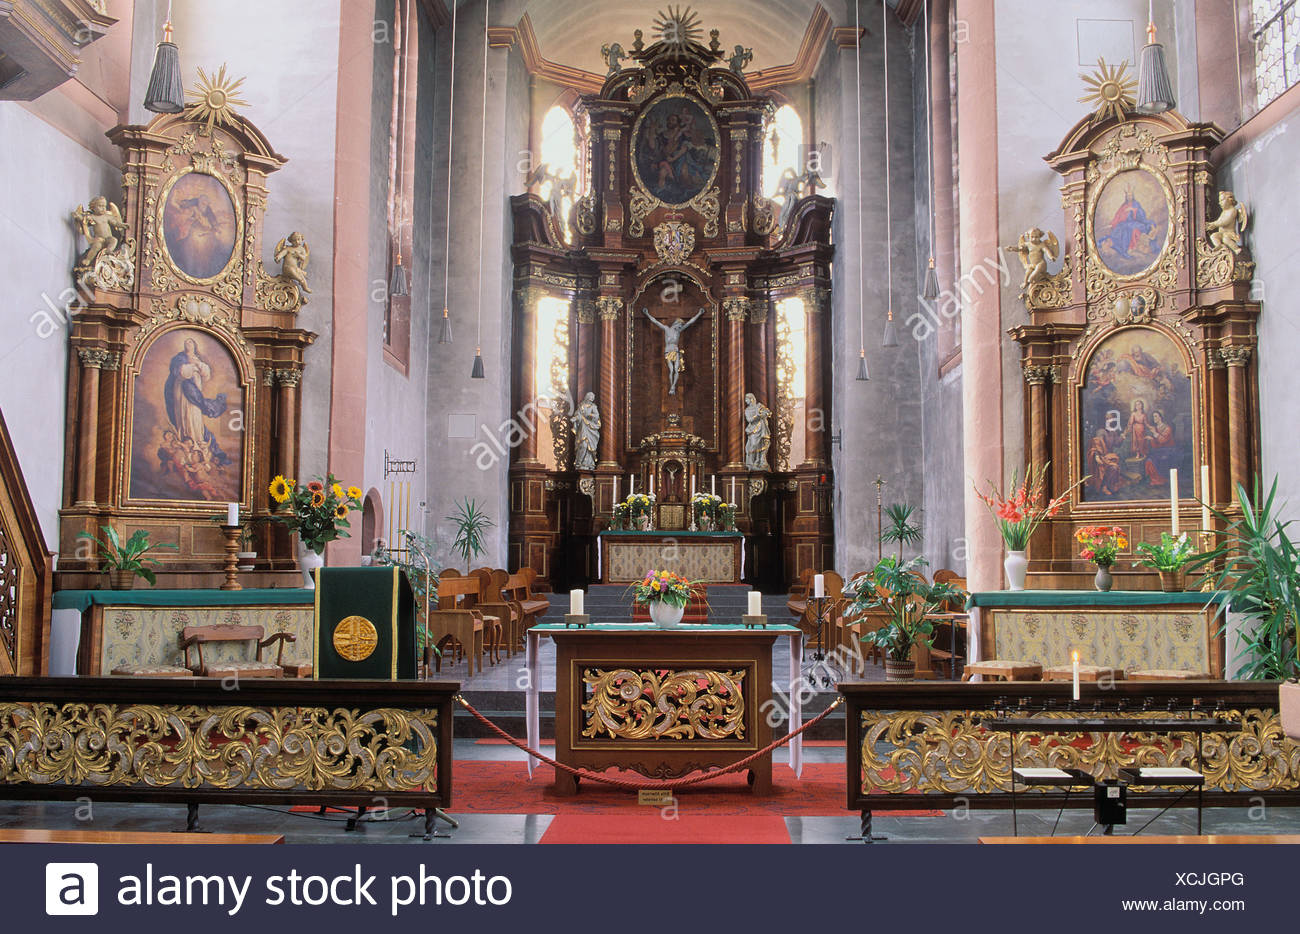 Interior view, Hunsrueckdom, Hunsrueck Cathedral, Saint Christopher's Church, Augustinian canonical foundation - Stock Image